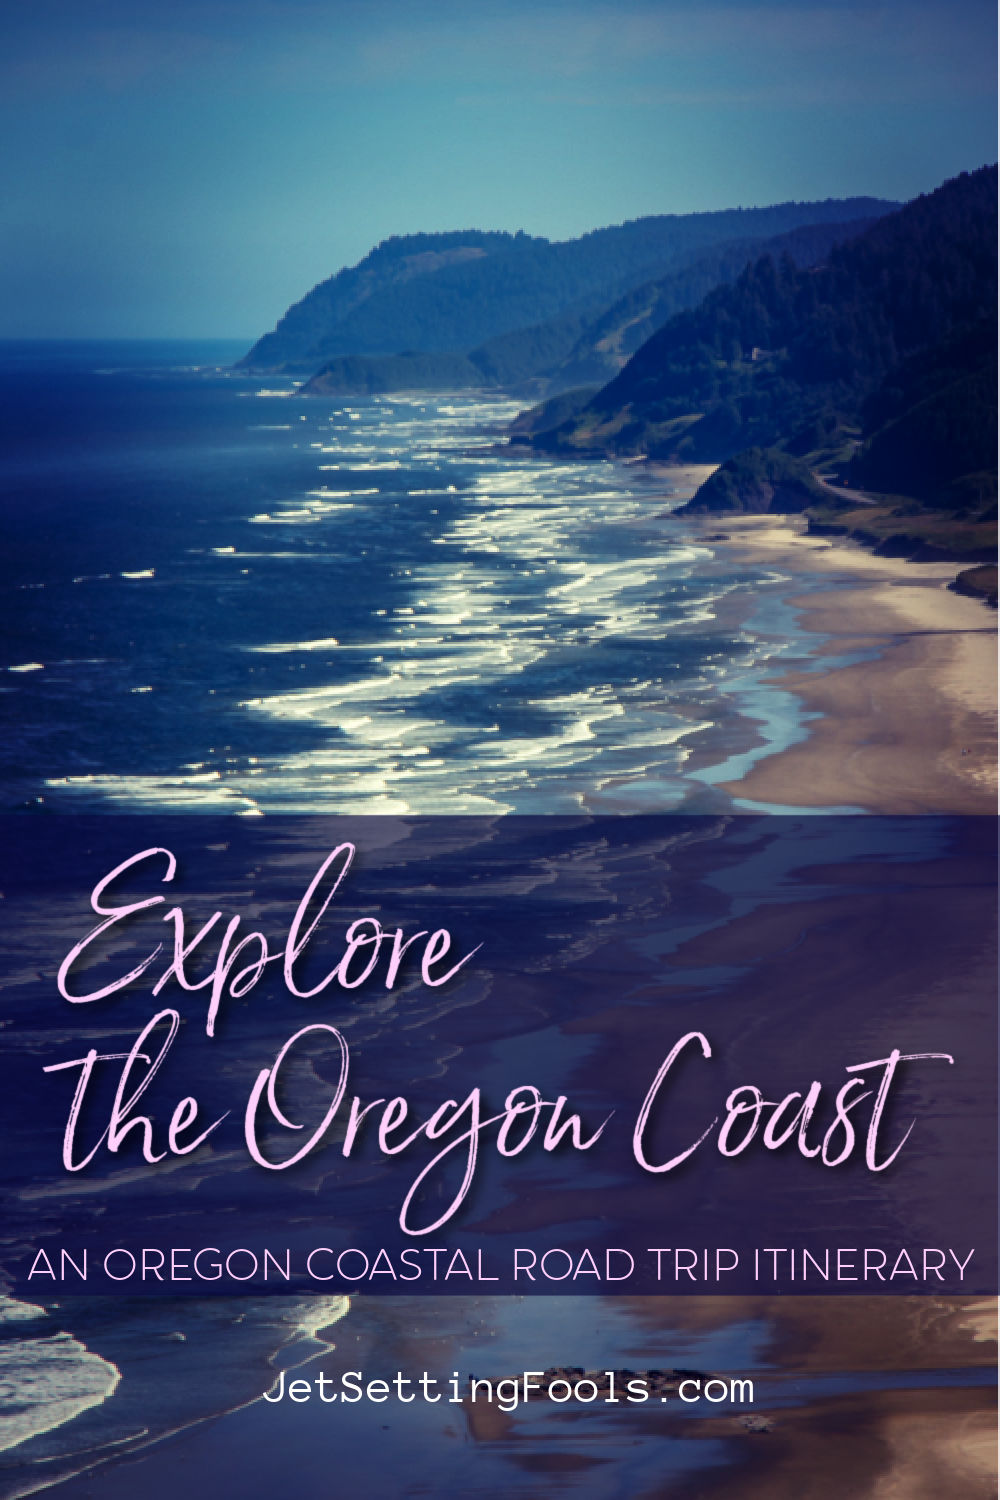 Explore the Oregon Coast Road Trip Itinerary by JetSettingFools.com